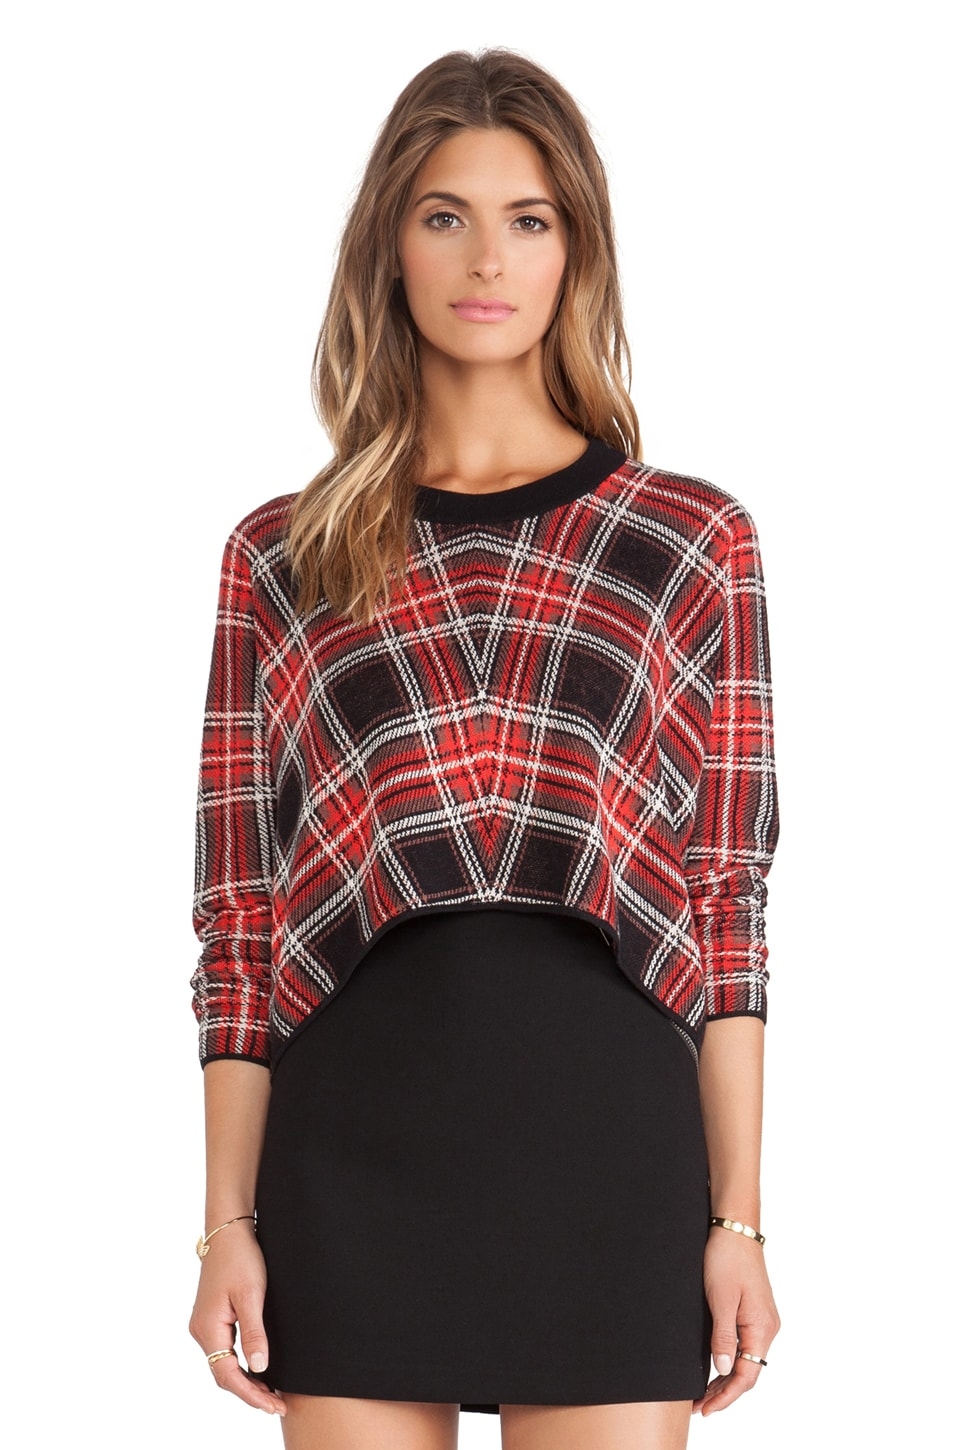 BCBGeneration Plaid Sweater in Black & Red Combo